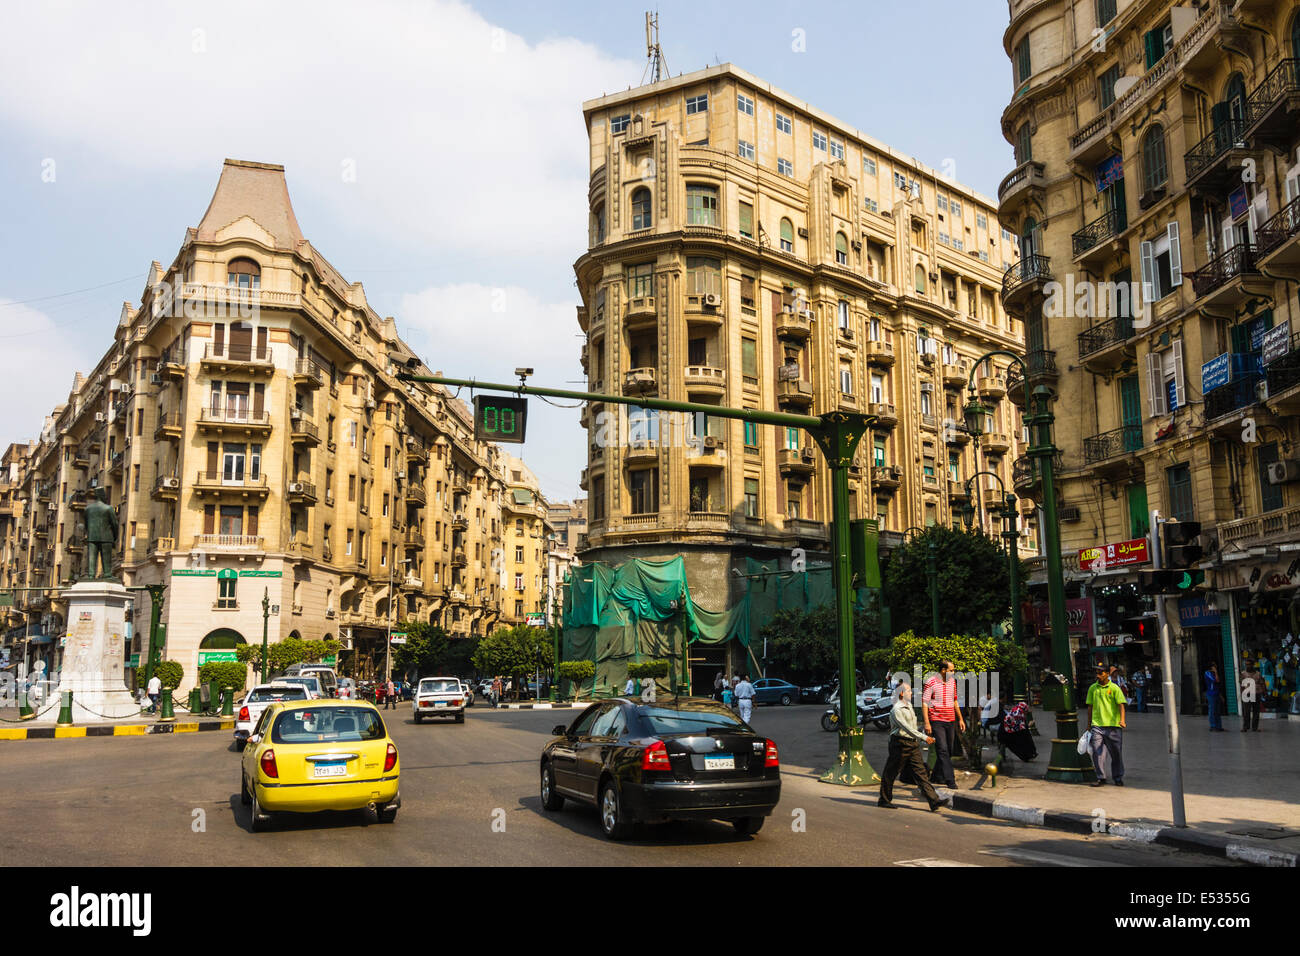 talaat harb square stock photos talaat harb square stock images